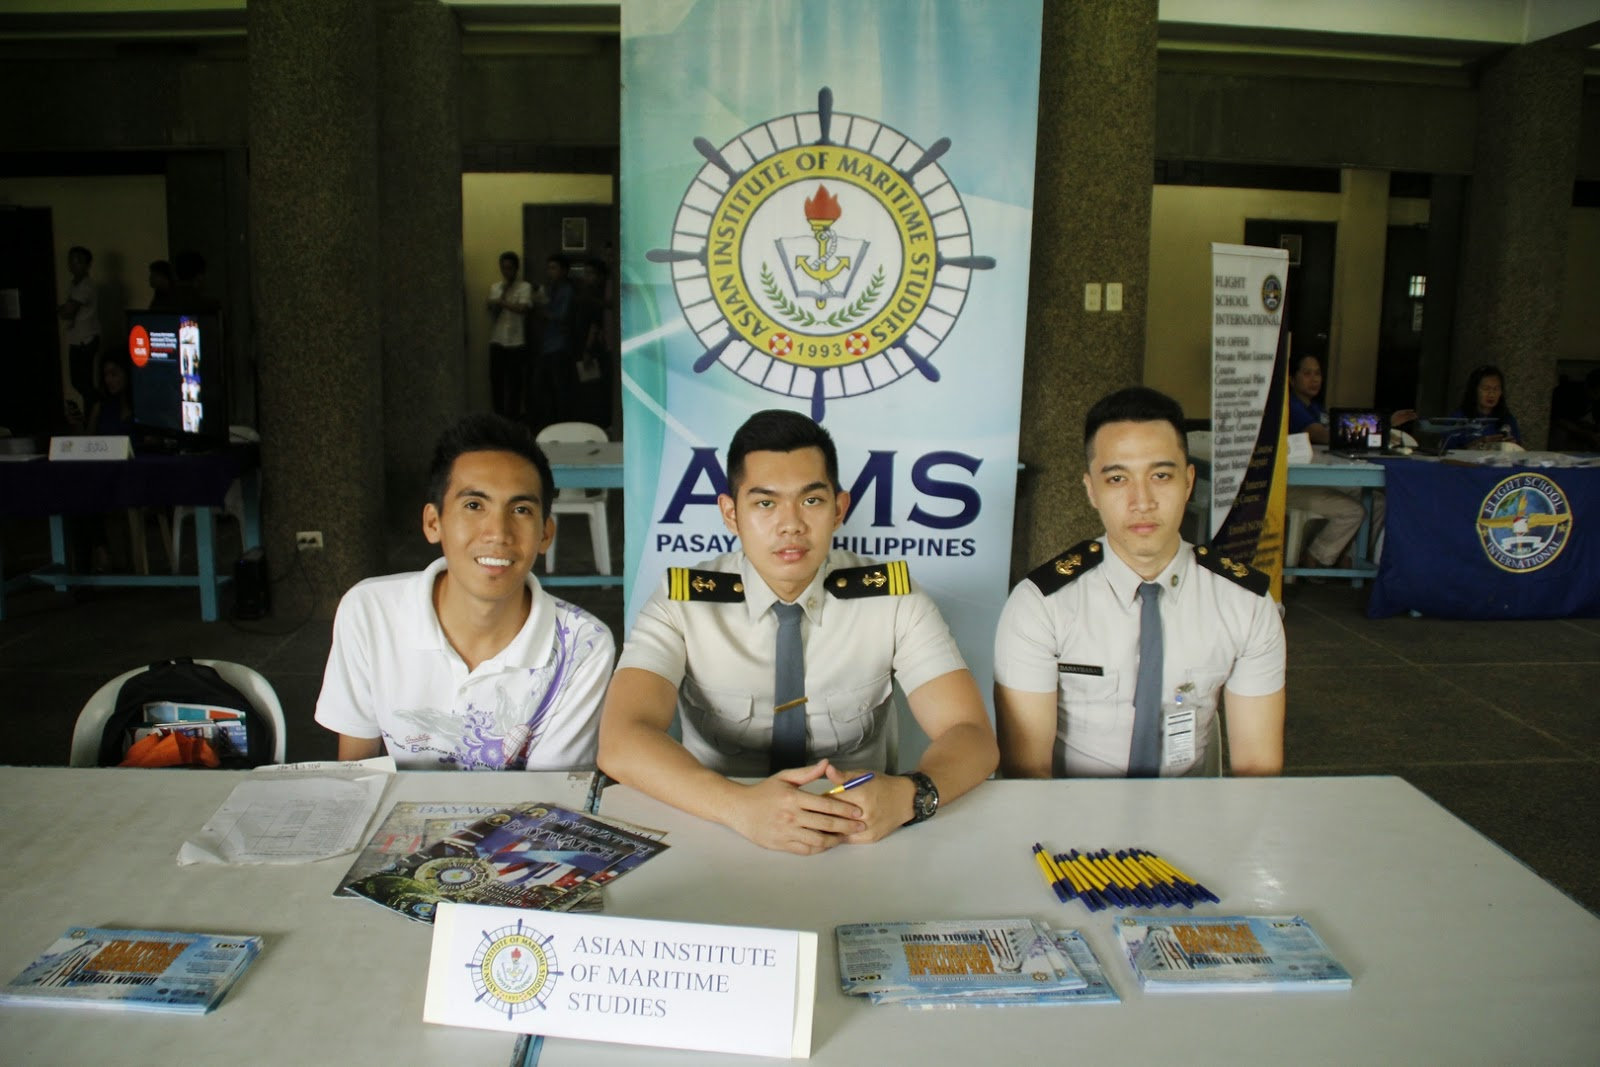 asian institute of maritime studies Asian institute of maritime studies is a philippines based private institute which offers maritime education courses the institute of maritime studies in philippines was founded in the year 1993 the institute is headed by chairman mrs jayne offemaria-abuid and president arlene abuid-paderanga.